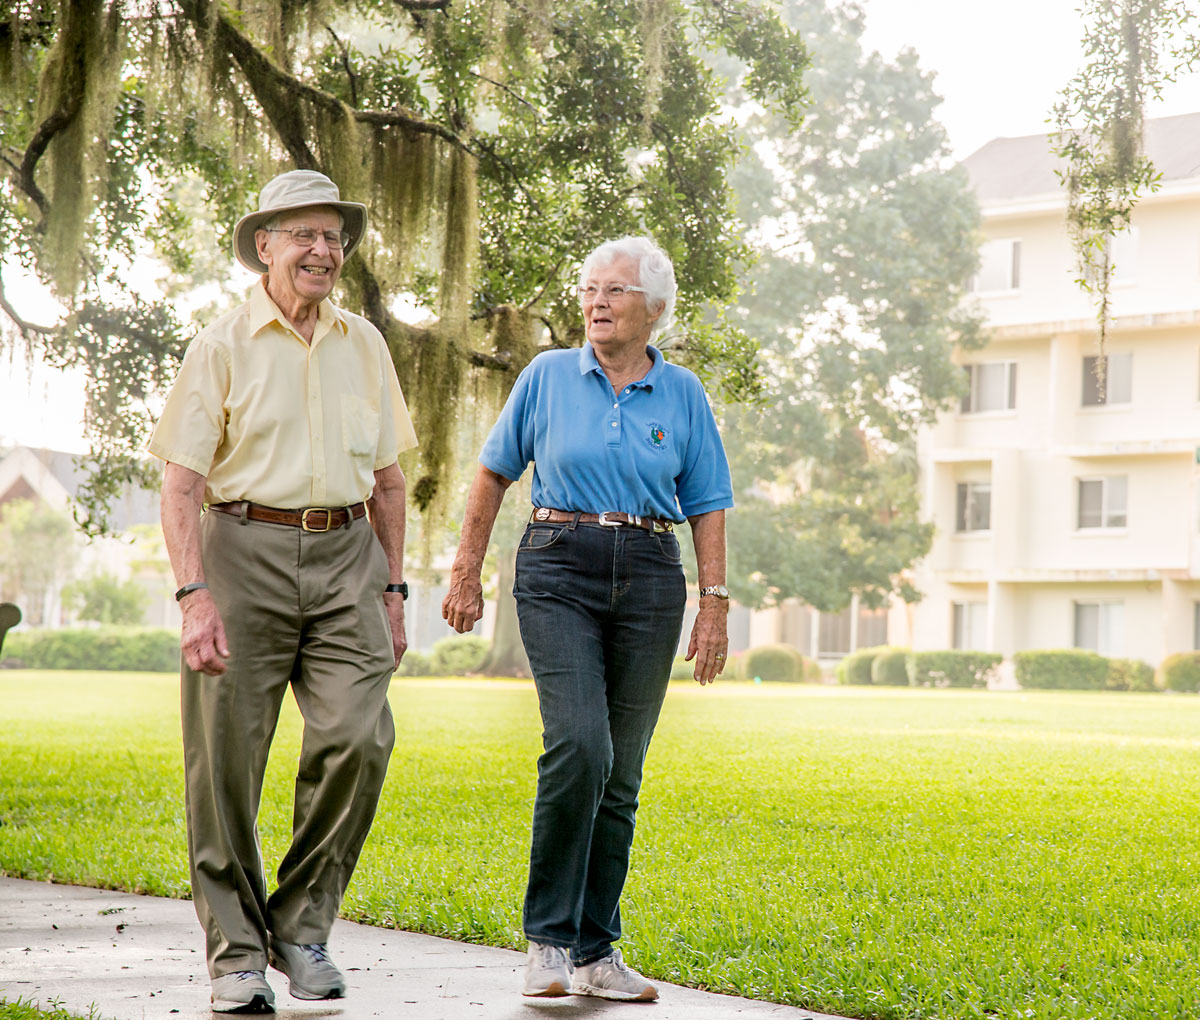 Why You Should Move Into Senior Living Sooner Rather Than Later